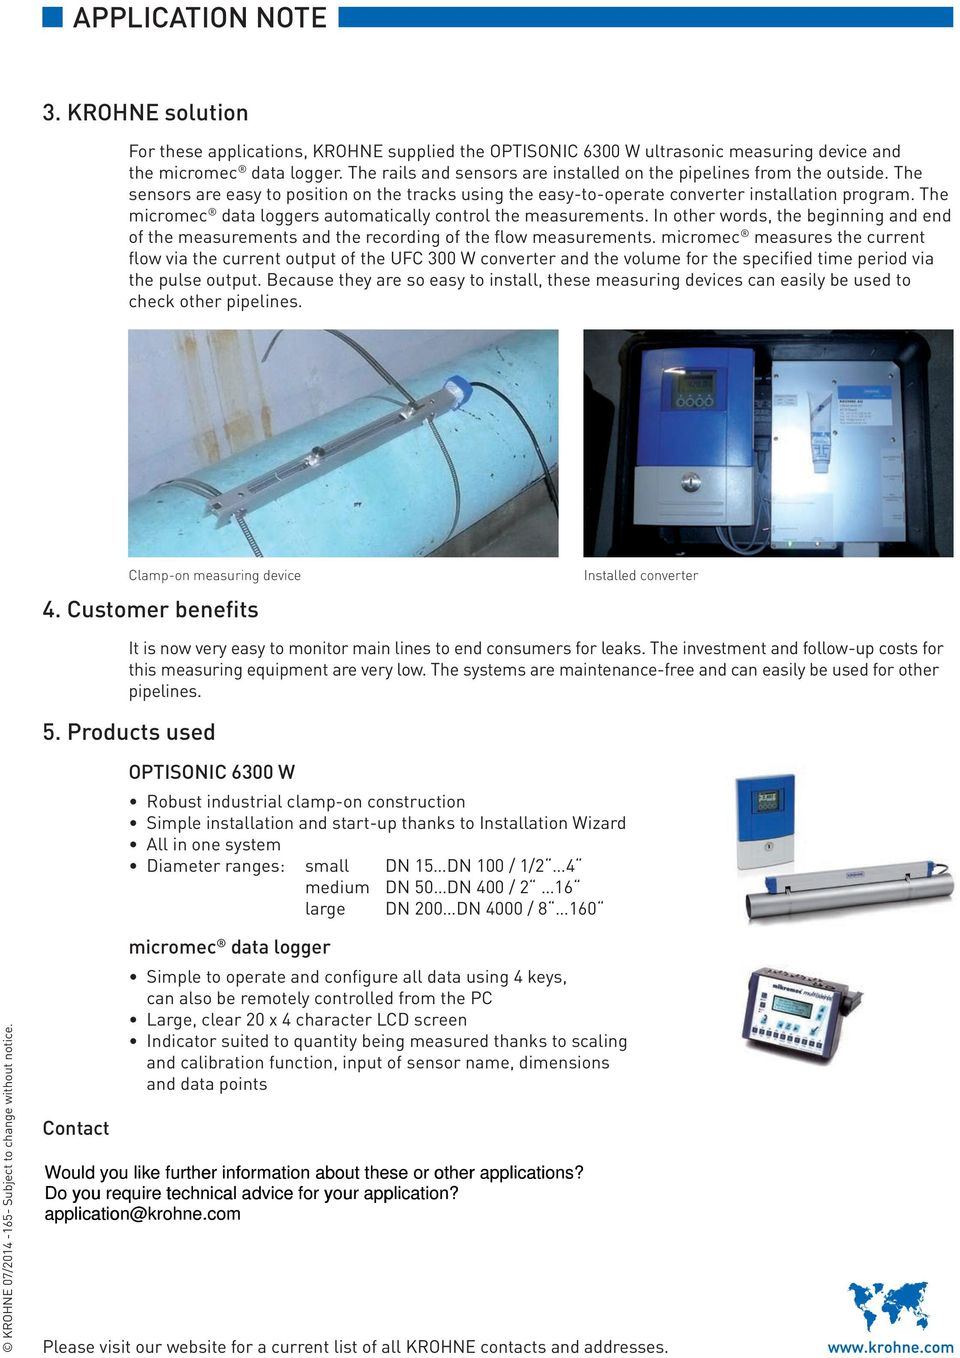 APPLICATION SAMPLES  Measurement solutions for water applications - PDF